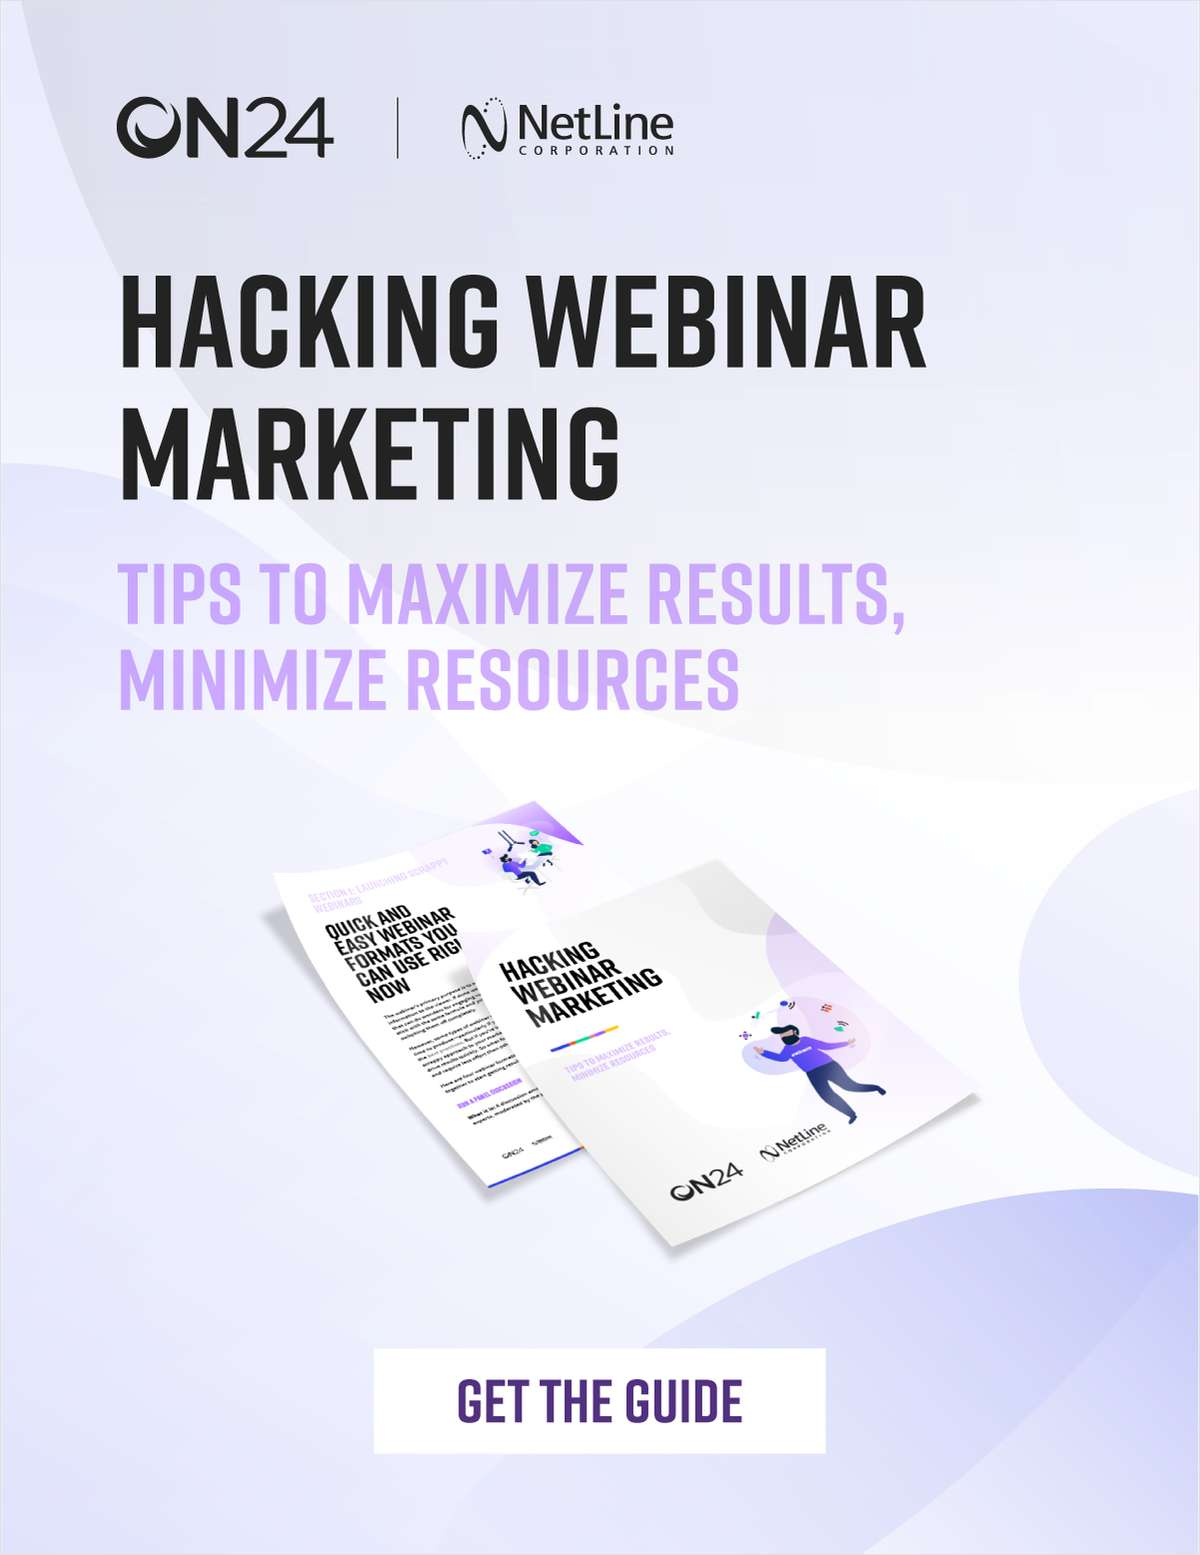 Hacking Webinar Marketing: Tips to Maximize Results and Minimize Resources